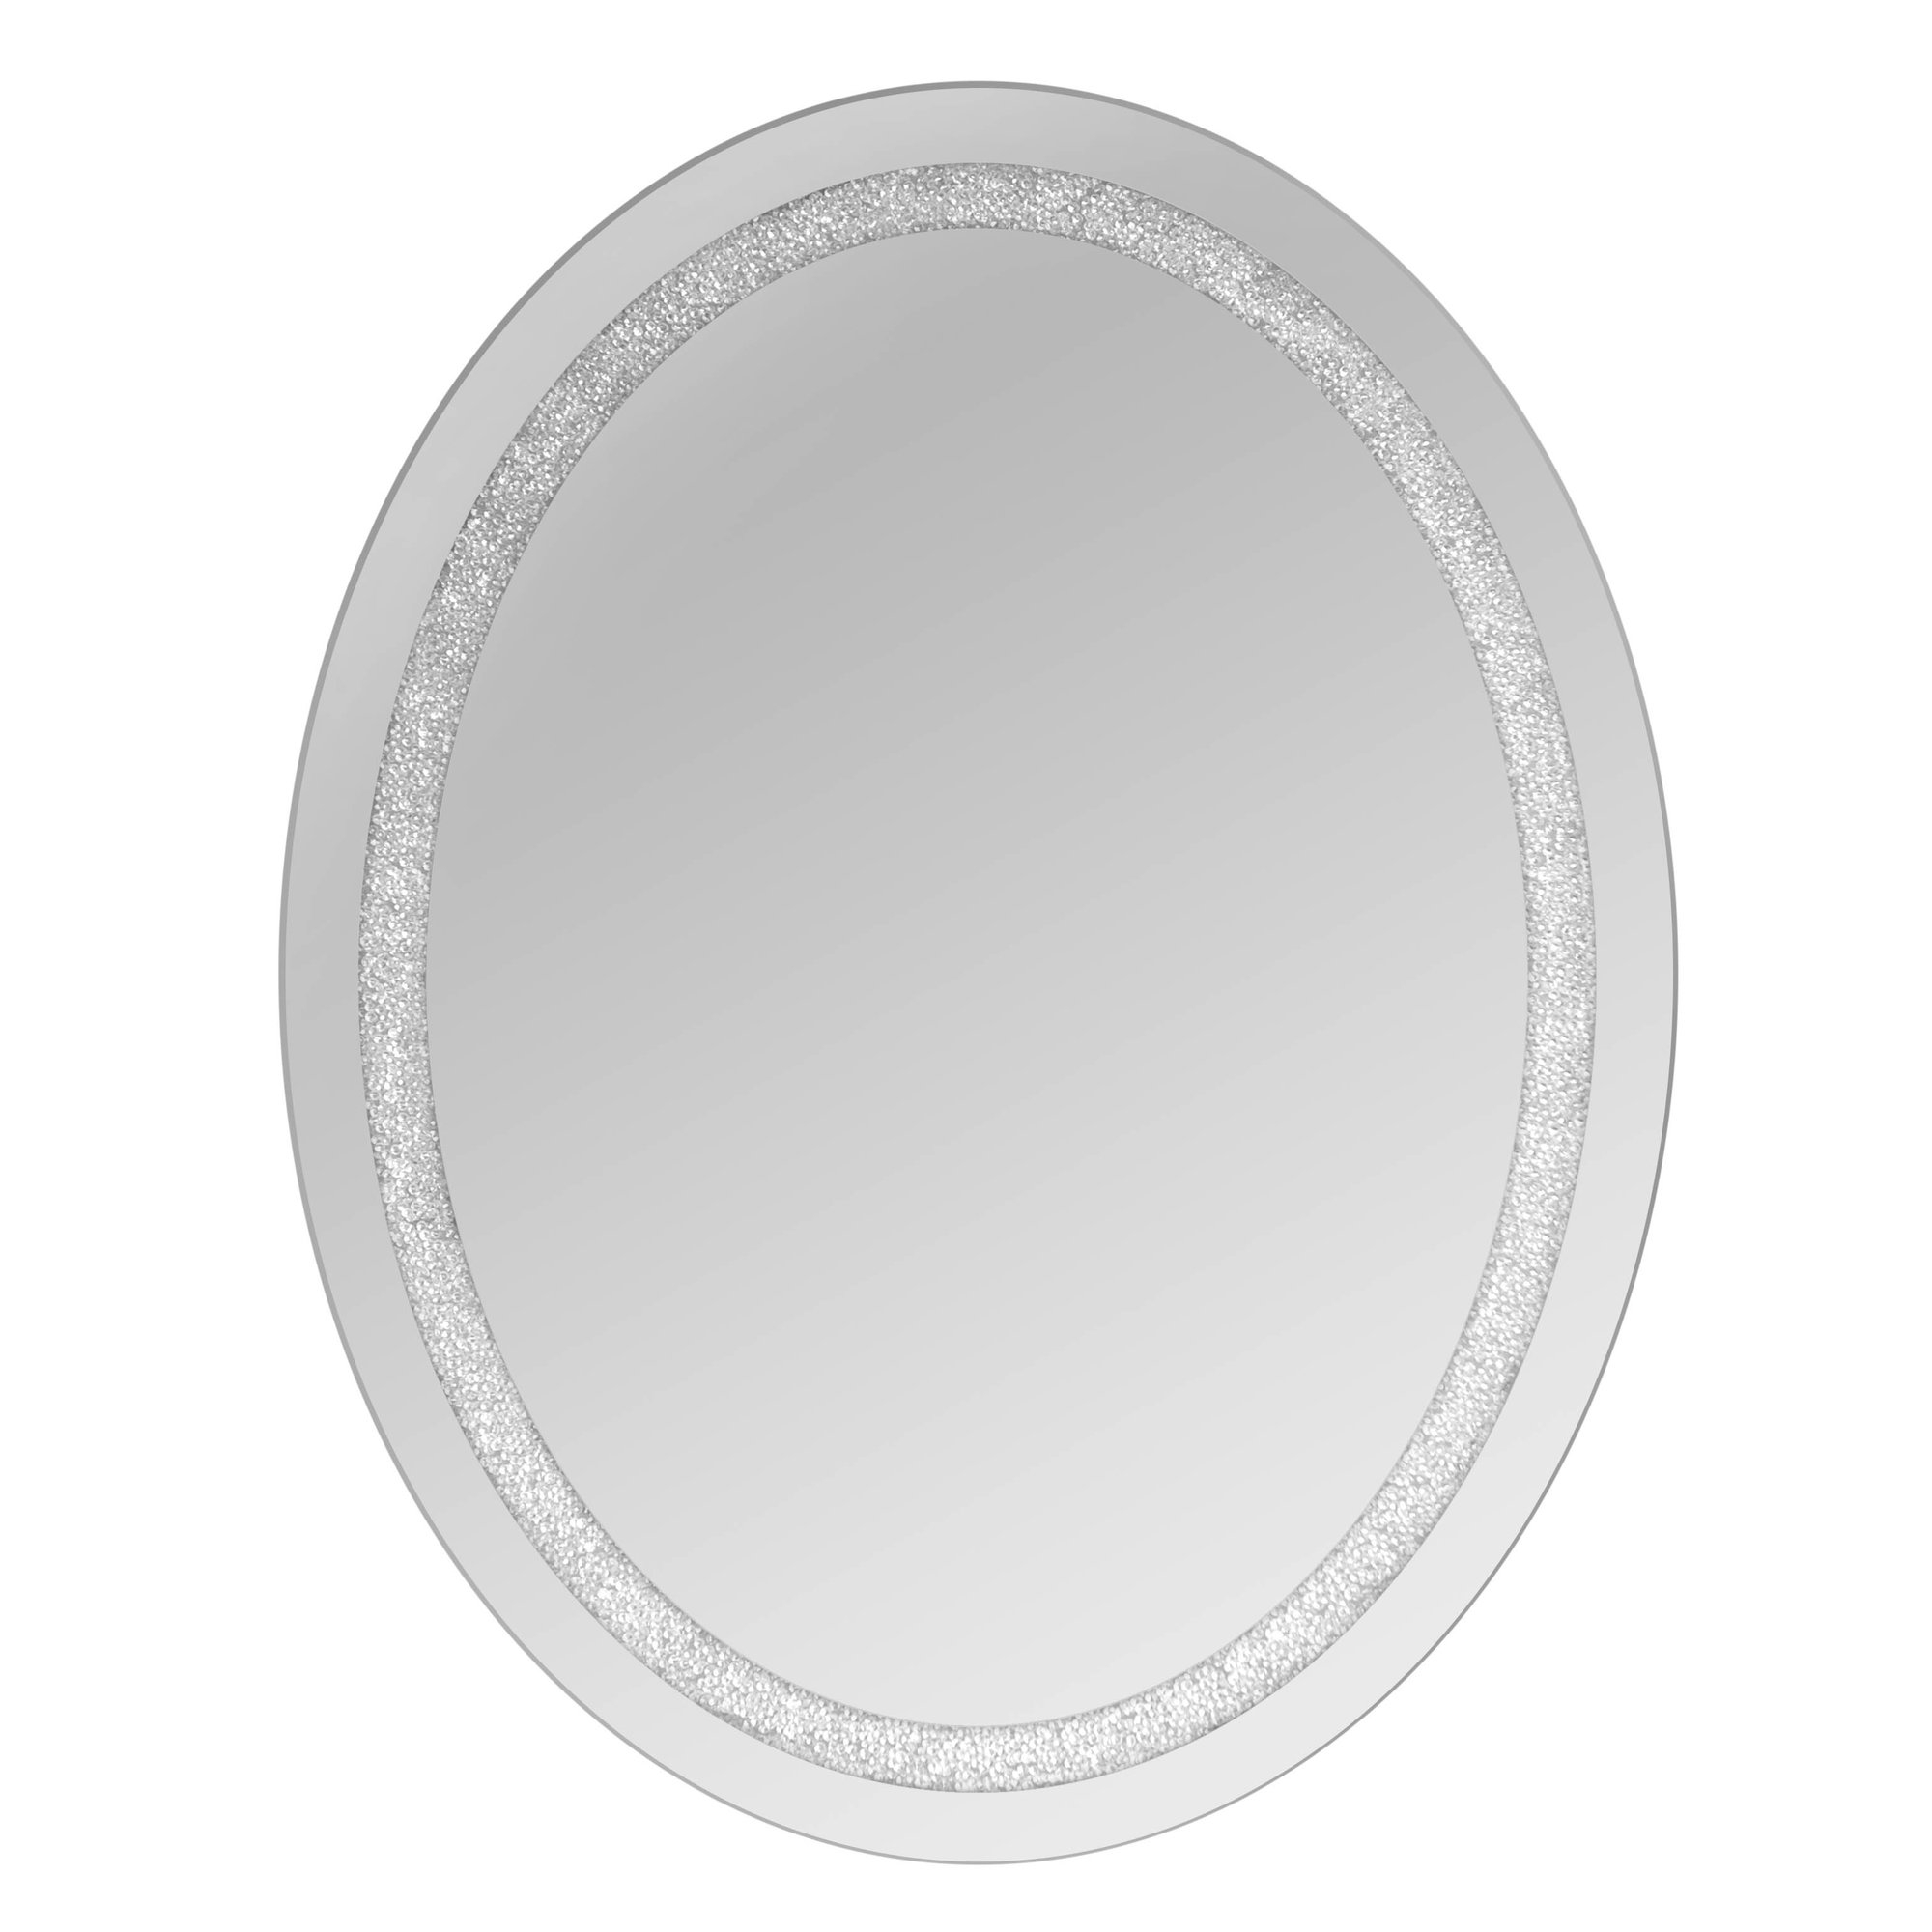 Selections Chaumont Oval Beaded Crystal Wall Mirror Reviews Intended For White Oval Wall Mirror (Image 11 of 15)